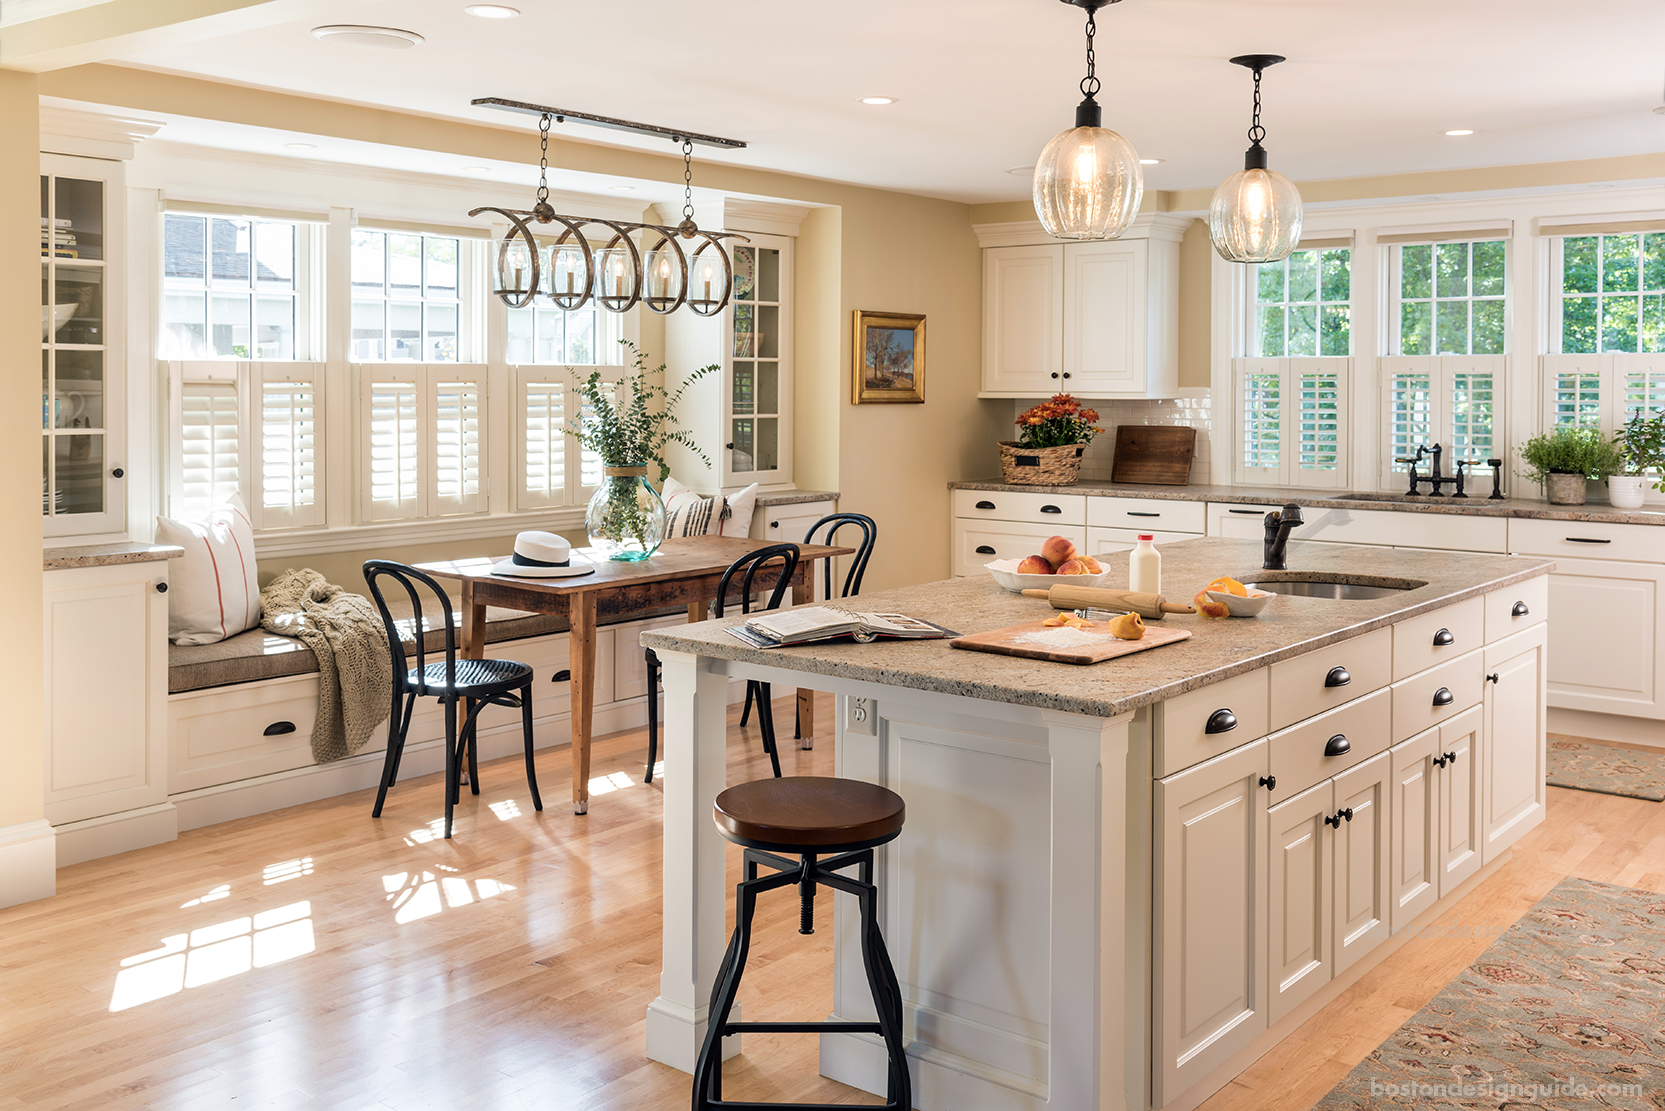 Kitchen Design Center A Historic Hingham Home Gets A Kitchen Makeover Boston Design Guide